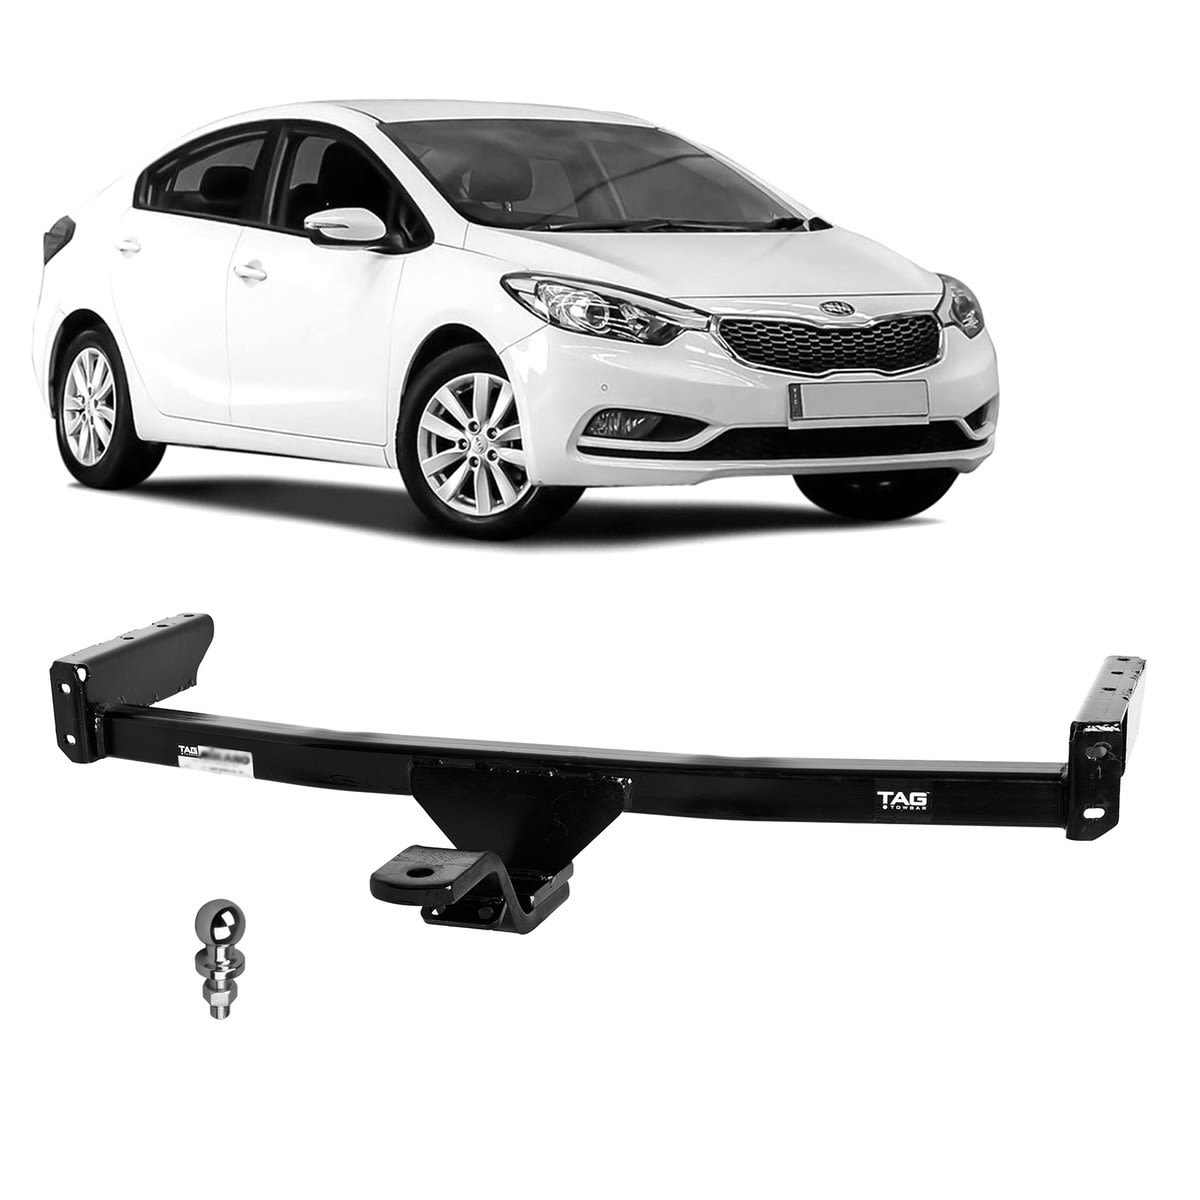 TAG Light Duty Towbar to suit KIA Cerato (08/2013 - 03/2018) - No Wiring Harness